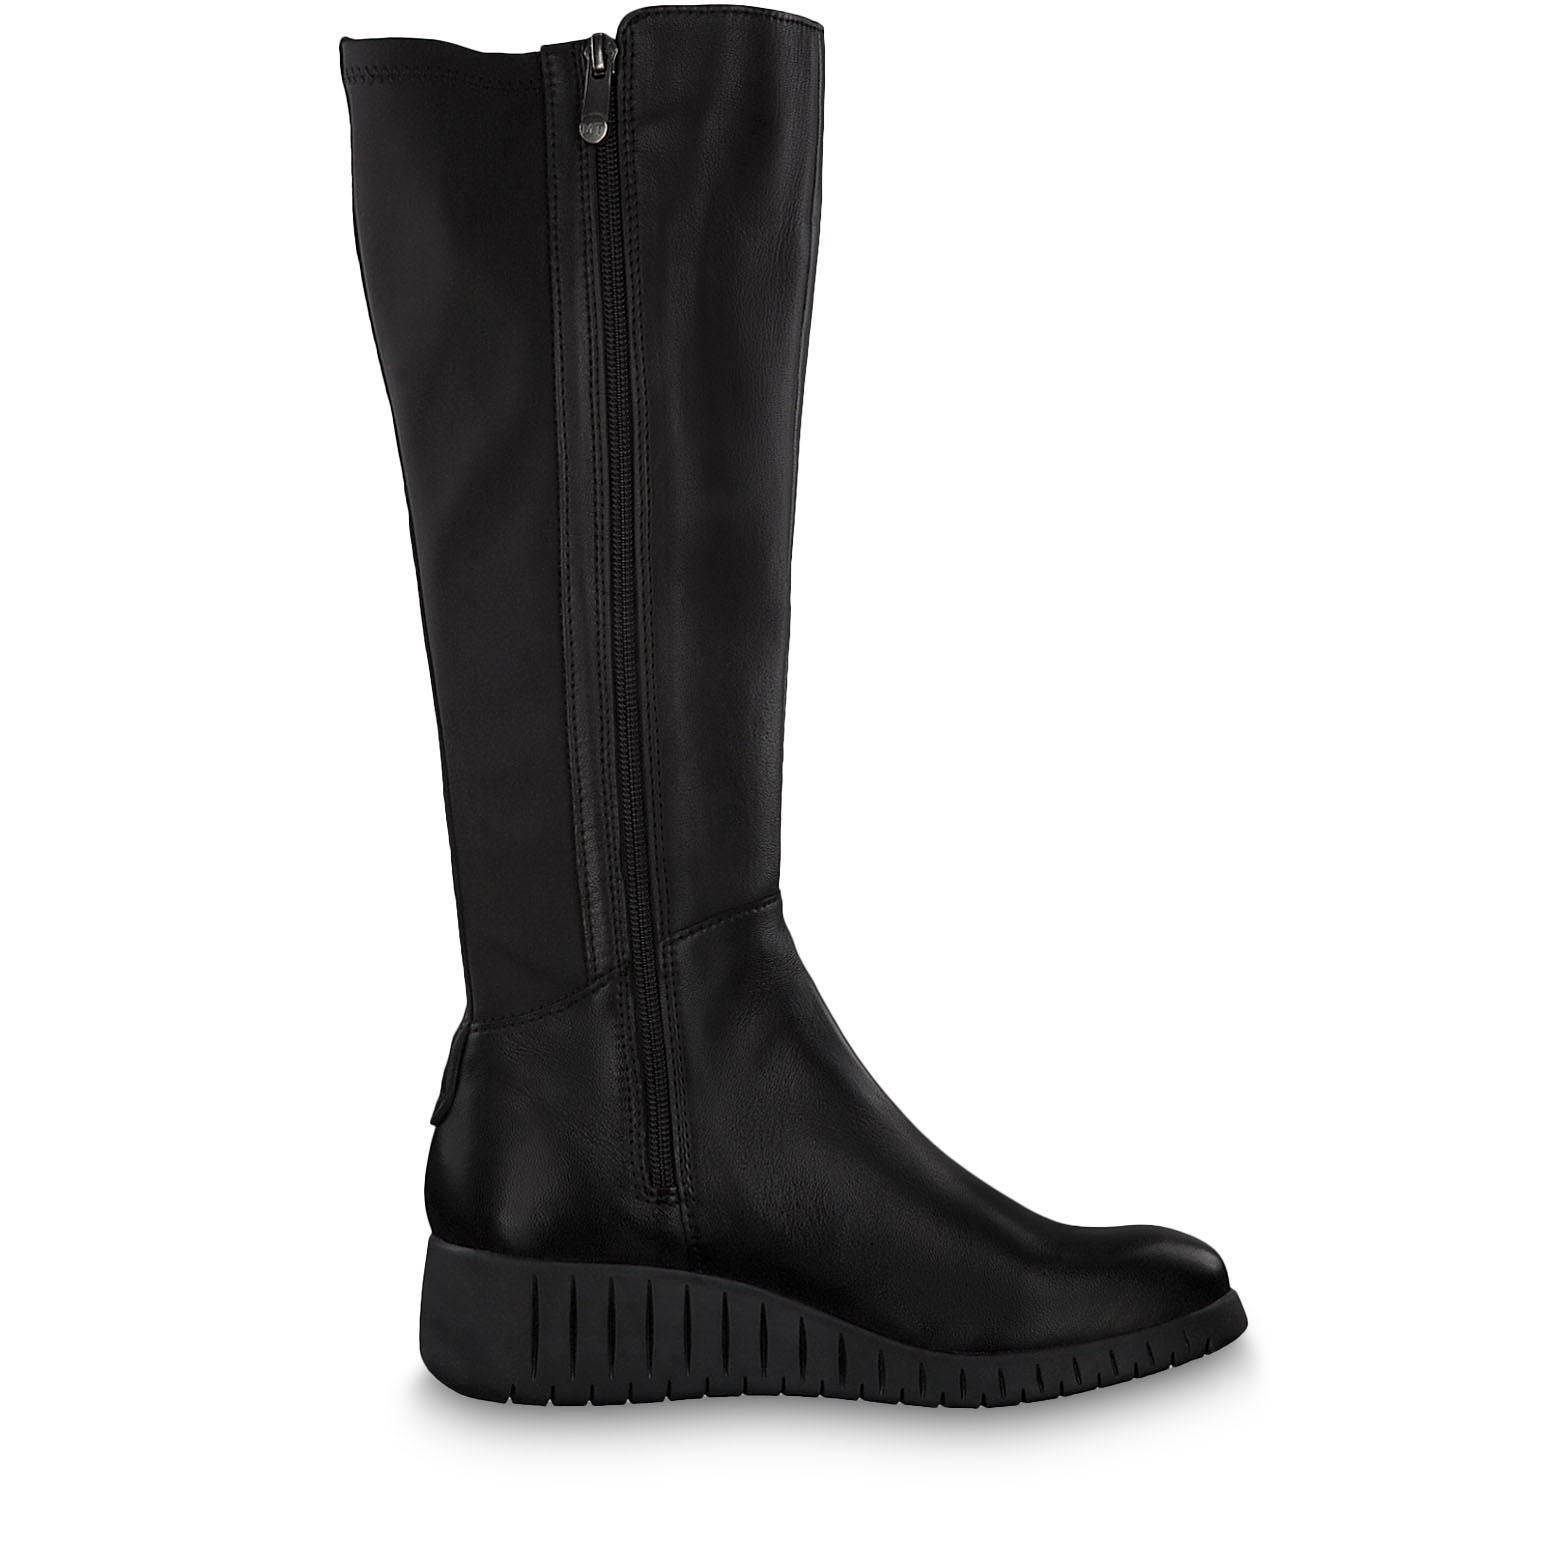 Leather Boots - black, BLACK ANT.COMB, hi-res